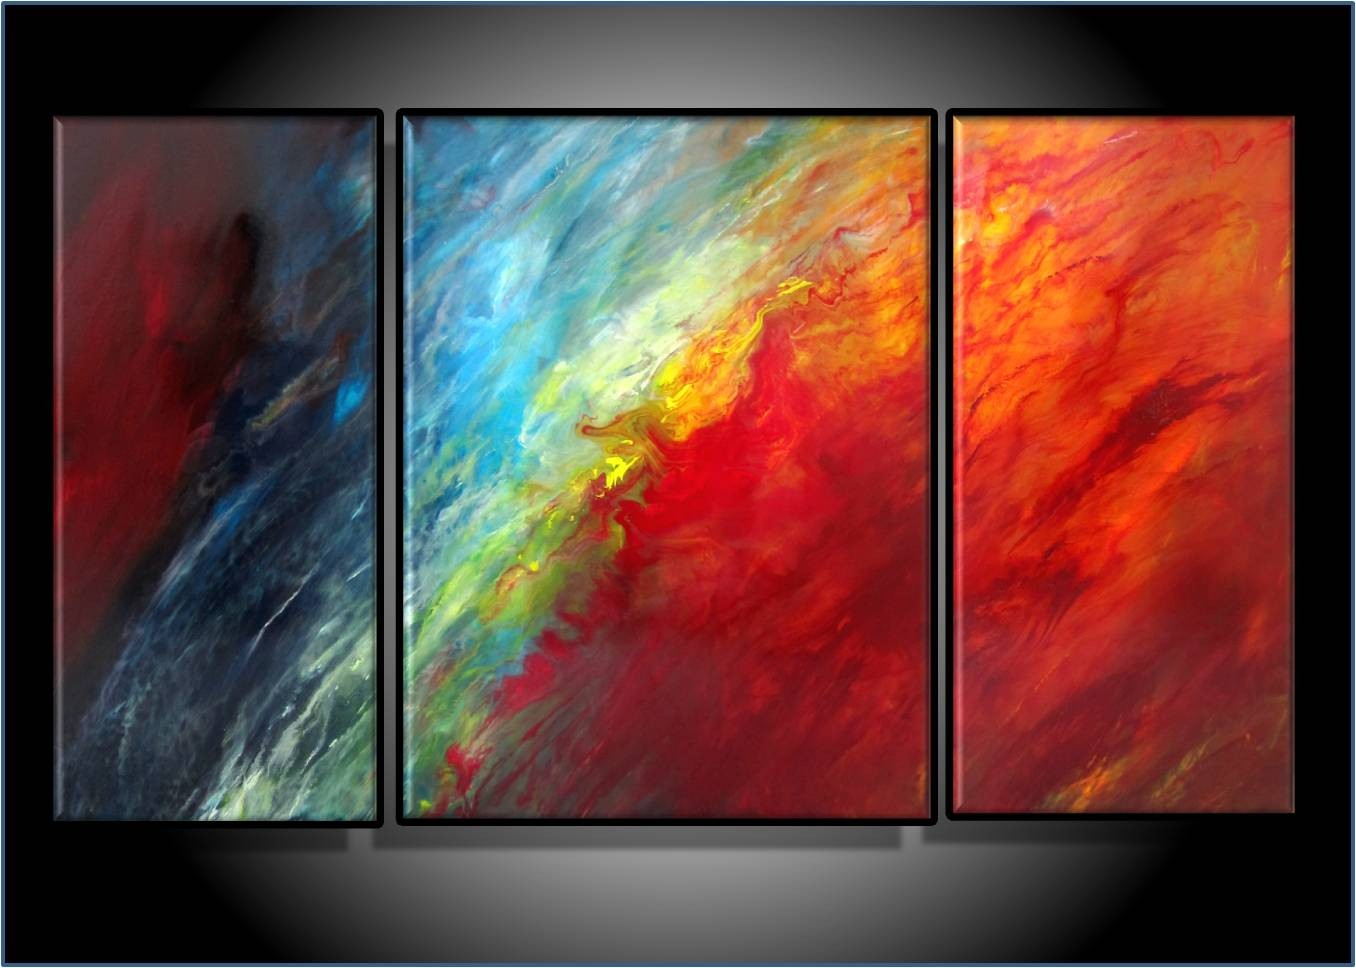 Abstract Art Paintings 2683 Hd Wallpapers in Abstract   Imagescicom 1356x968